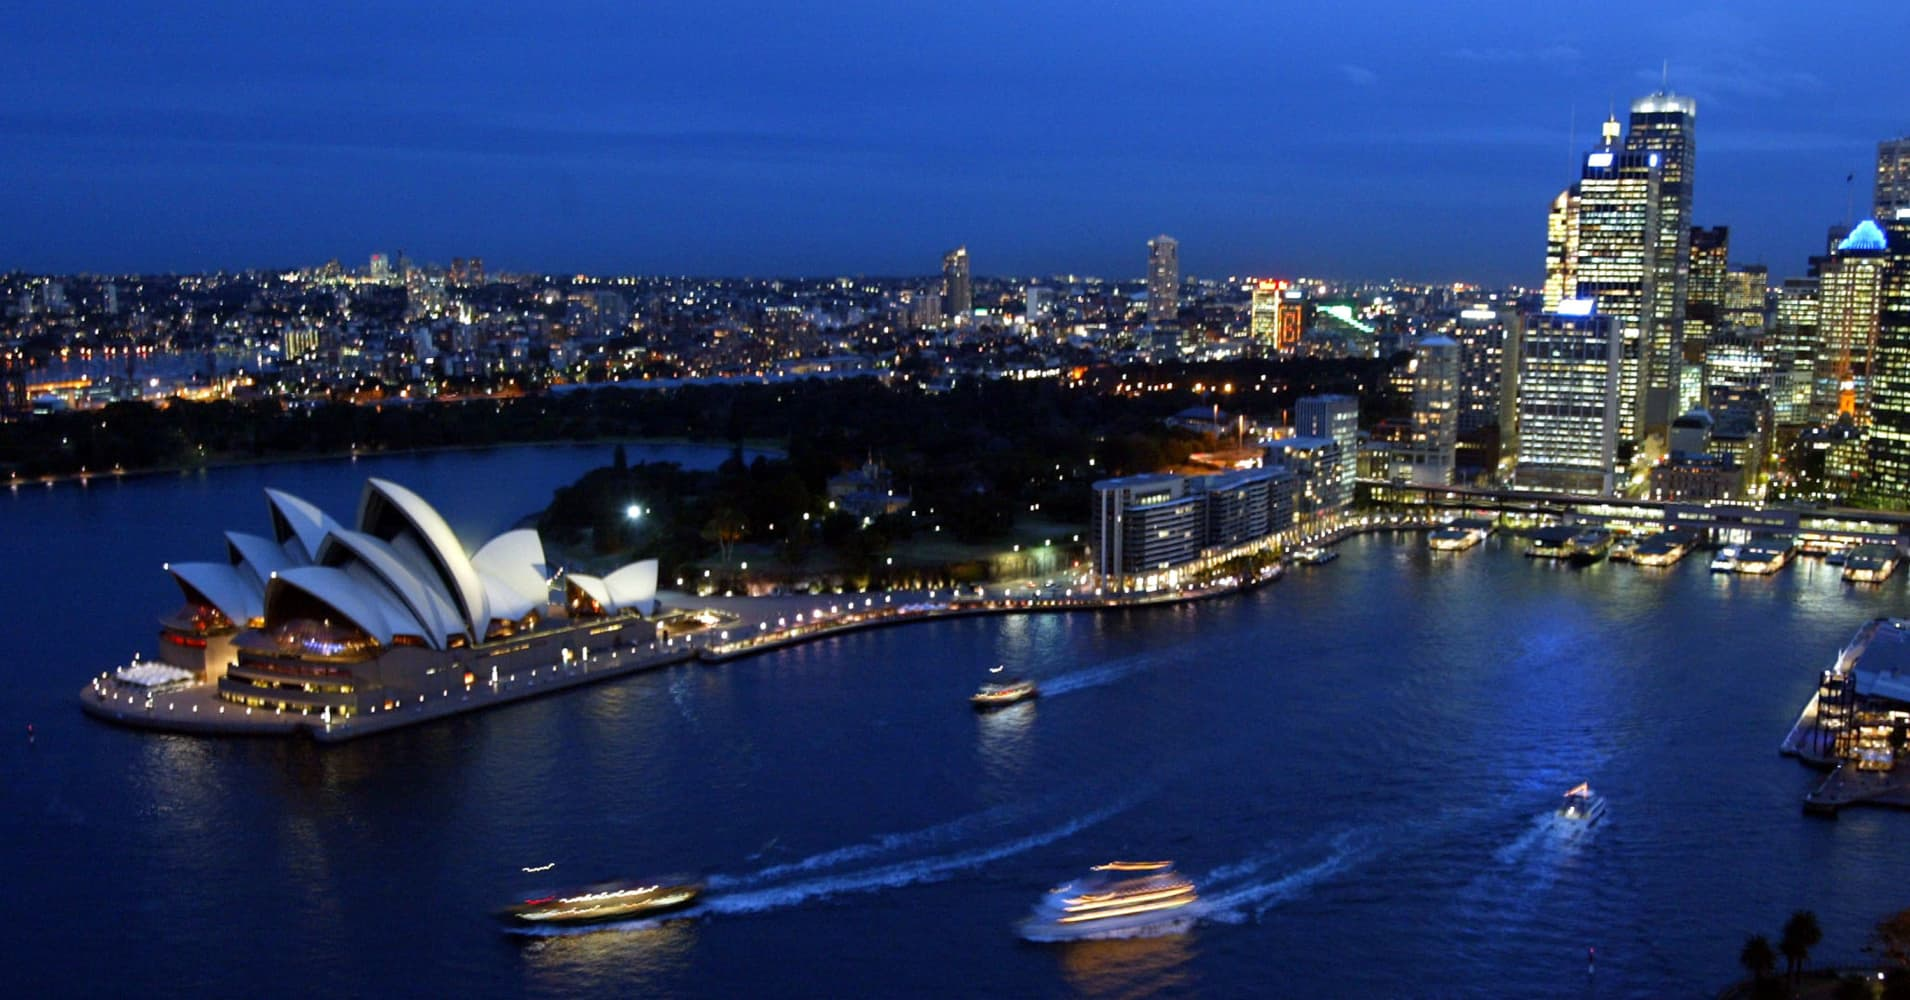 A general view of the Sydney Opera House from the Sydney Harbour Bridge